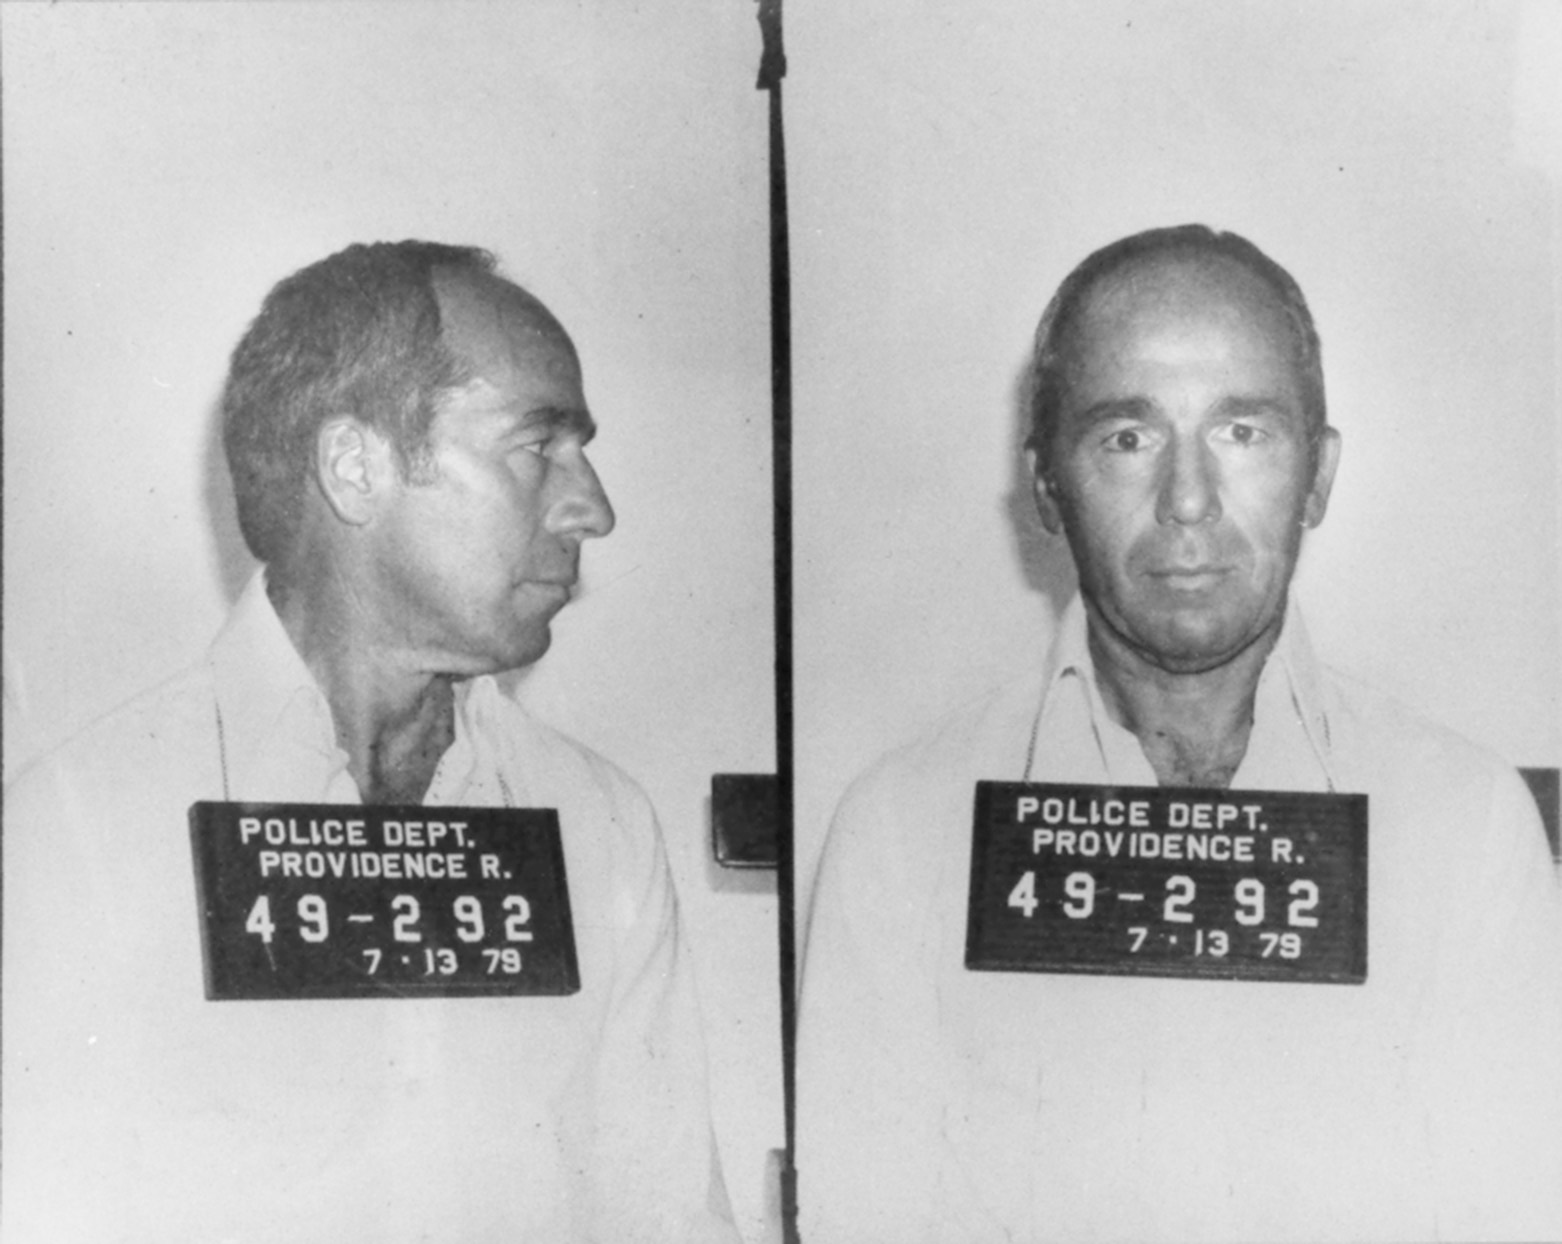 Louis Manocchio in a July 13, 1979 mug shot.  Providence Police Department photo, courtesy of The Providence Journal.